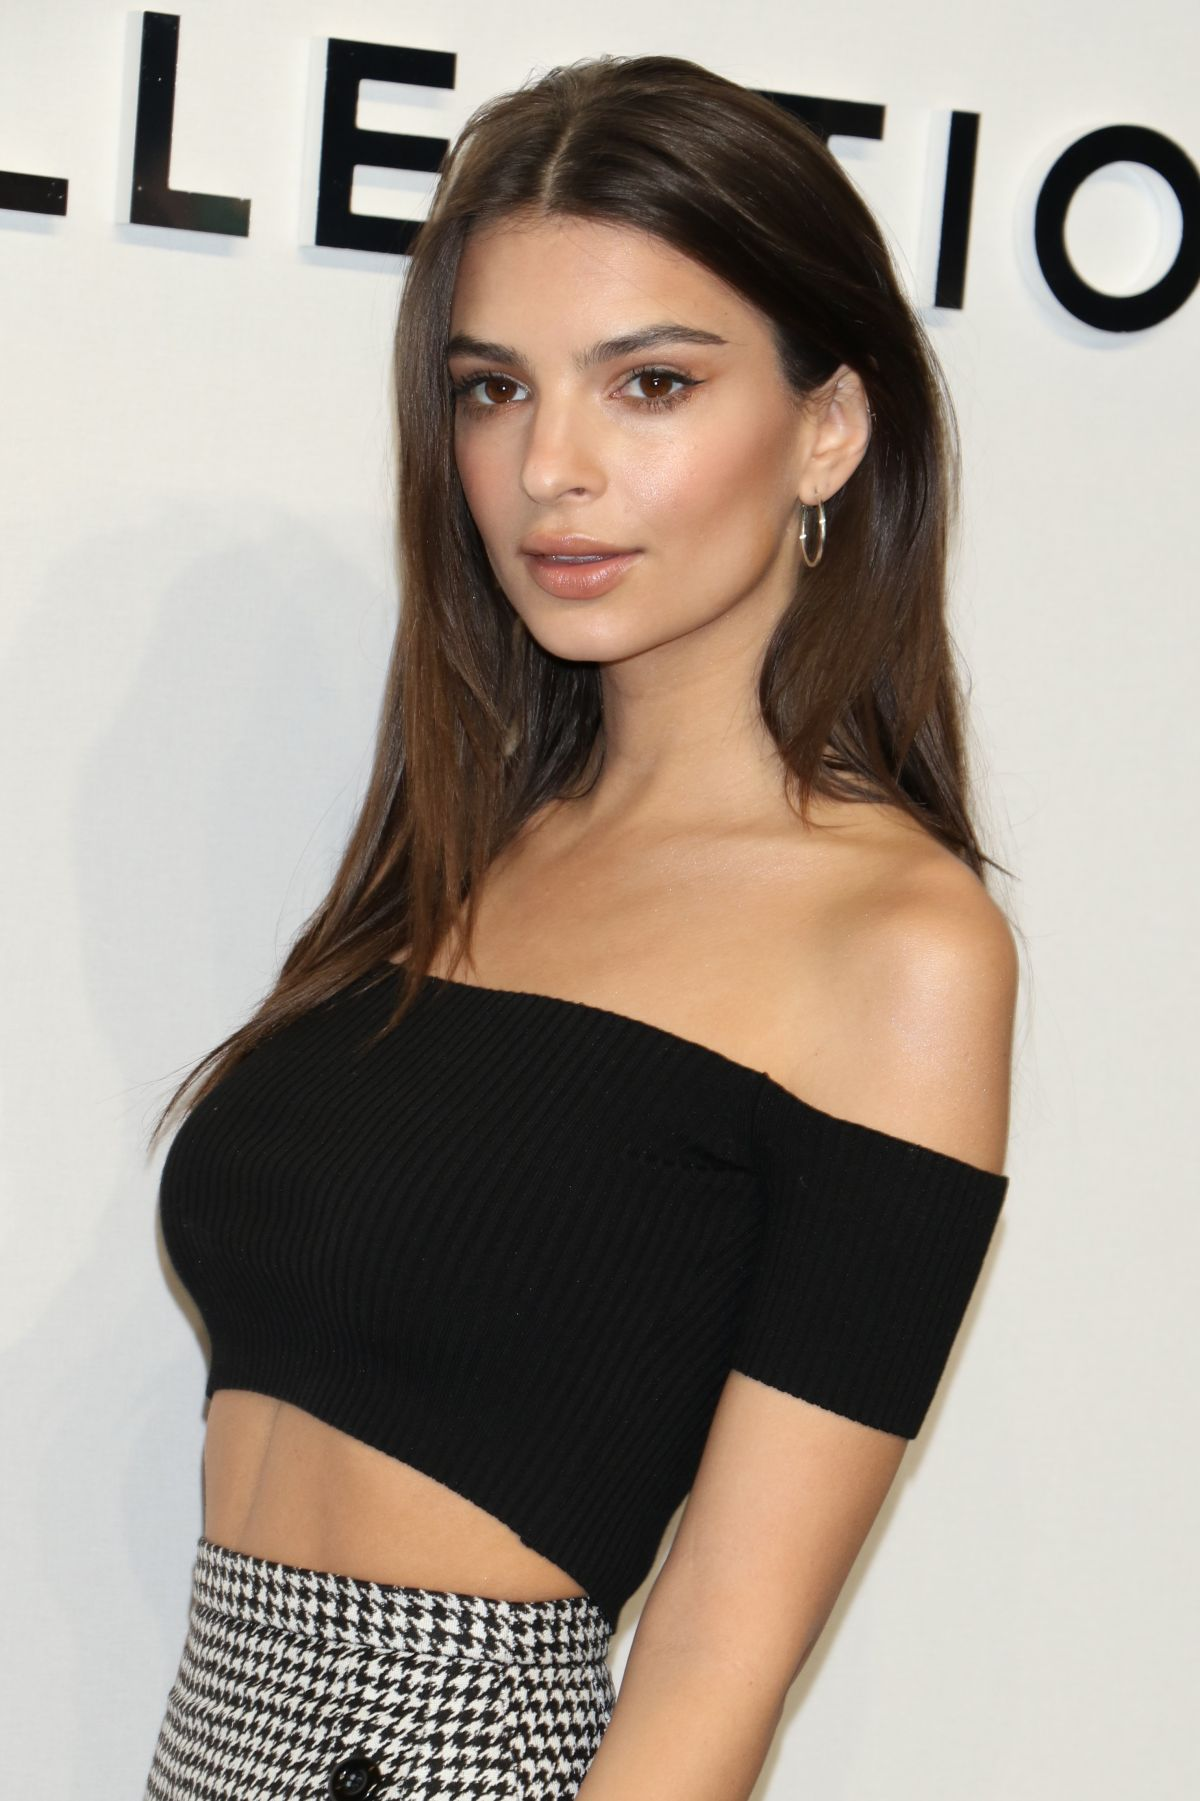 emily ratajkowski - photo #18